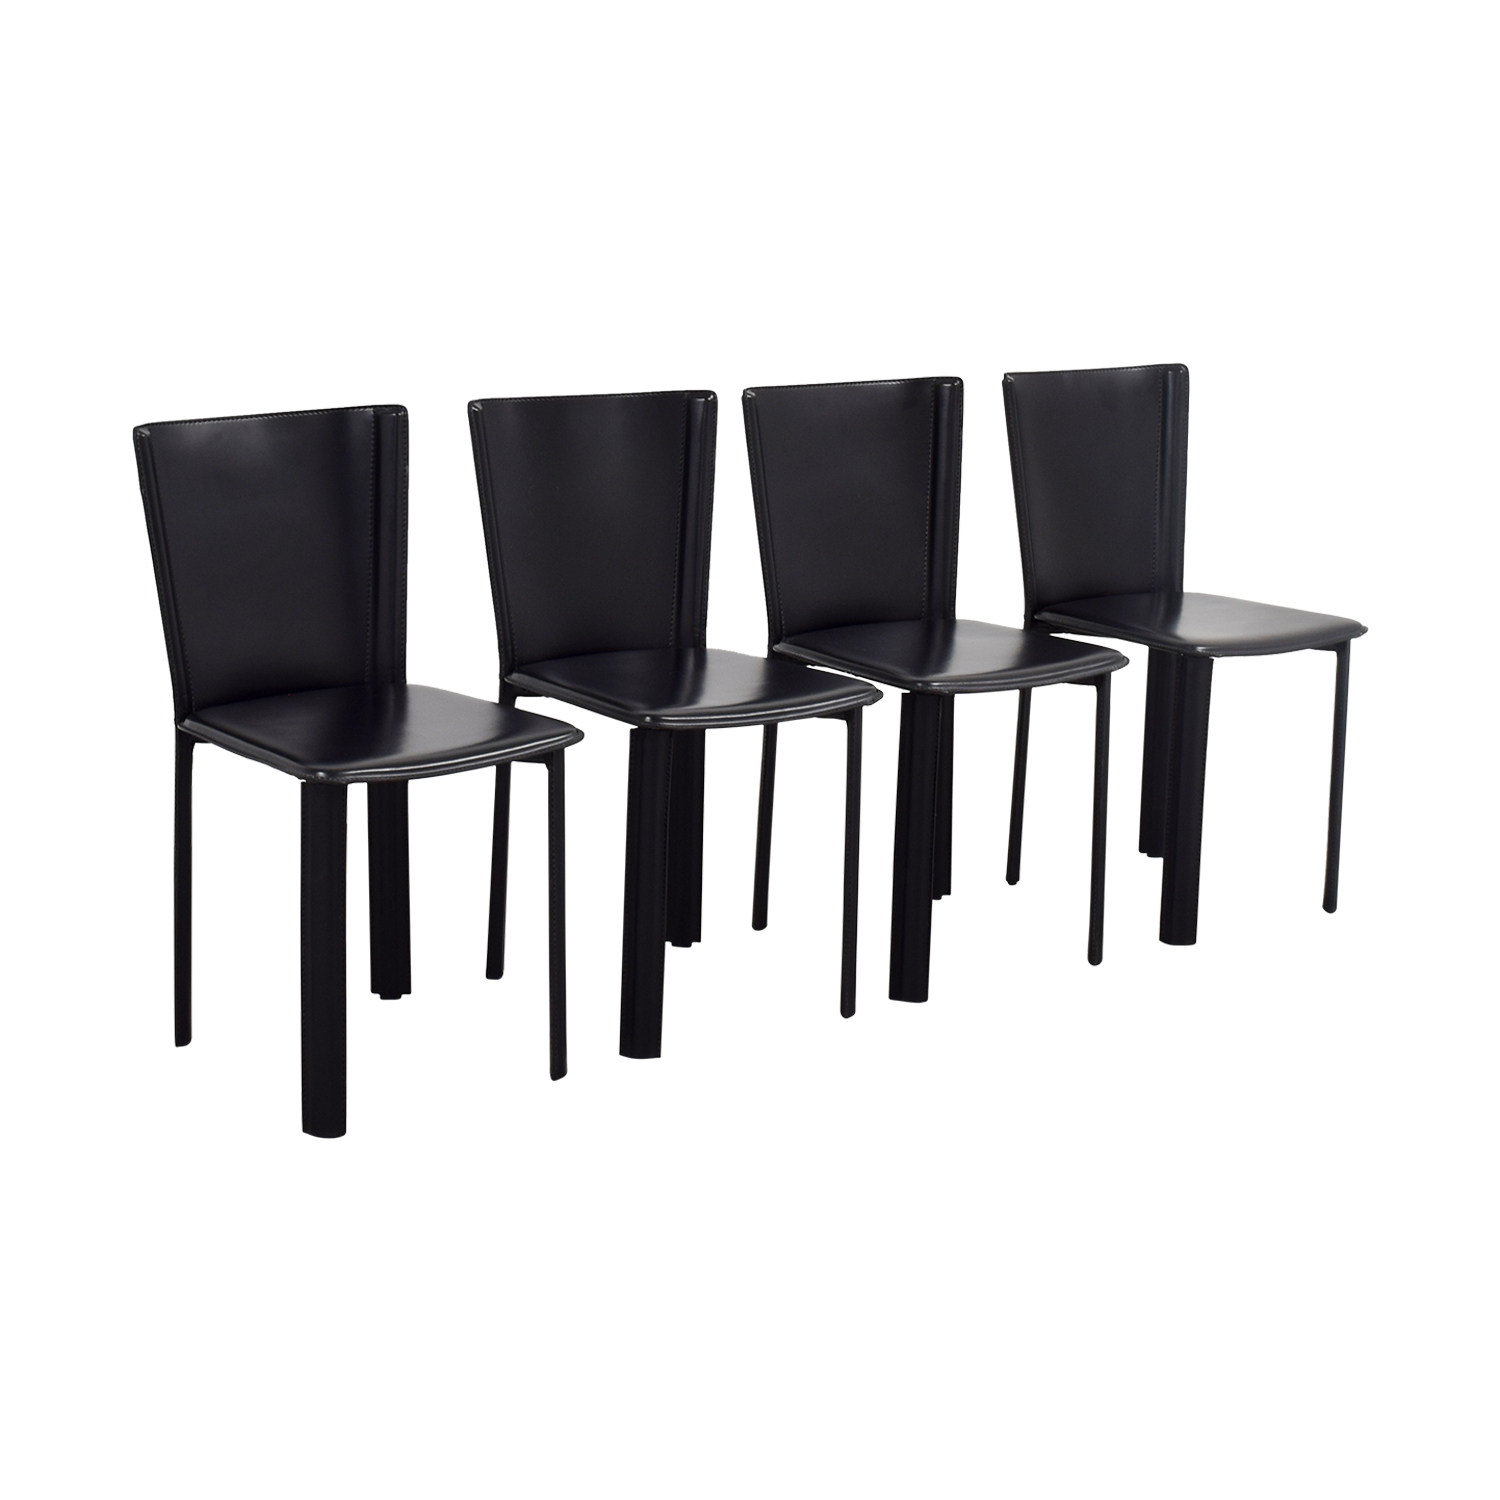 79 off design within reach design within reach allegro black dining chairs chairs. Black Bedroom Furniture Sets. Home Design Ideas